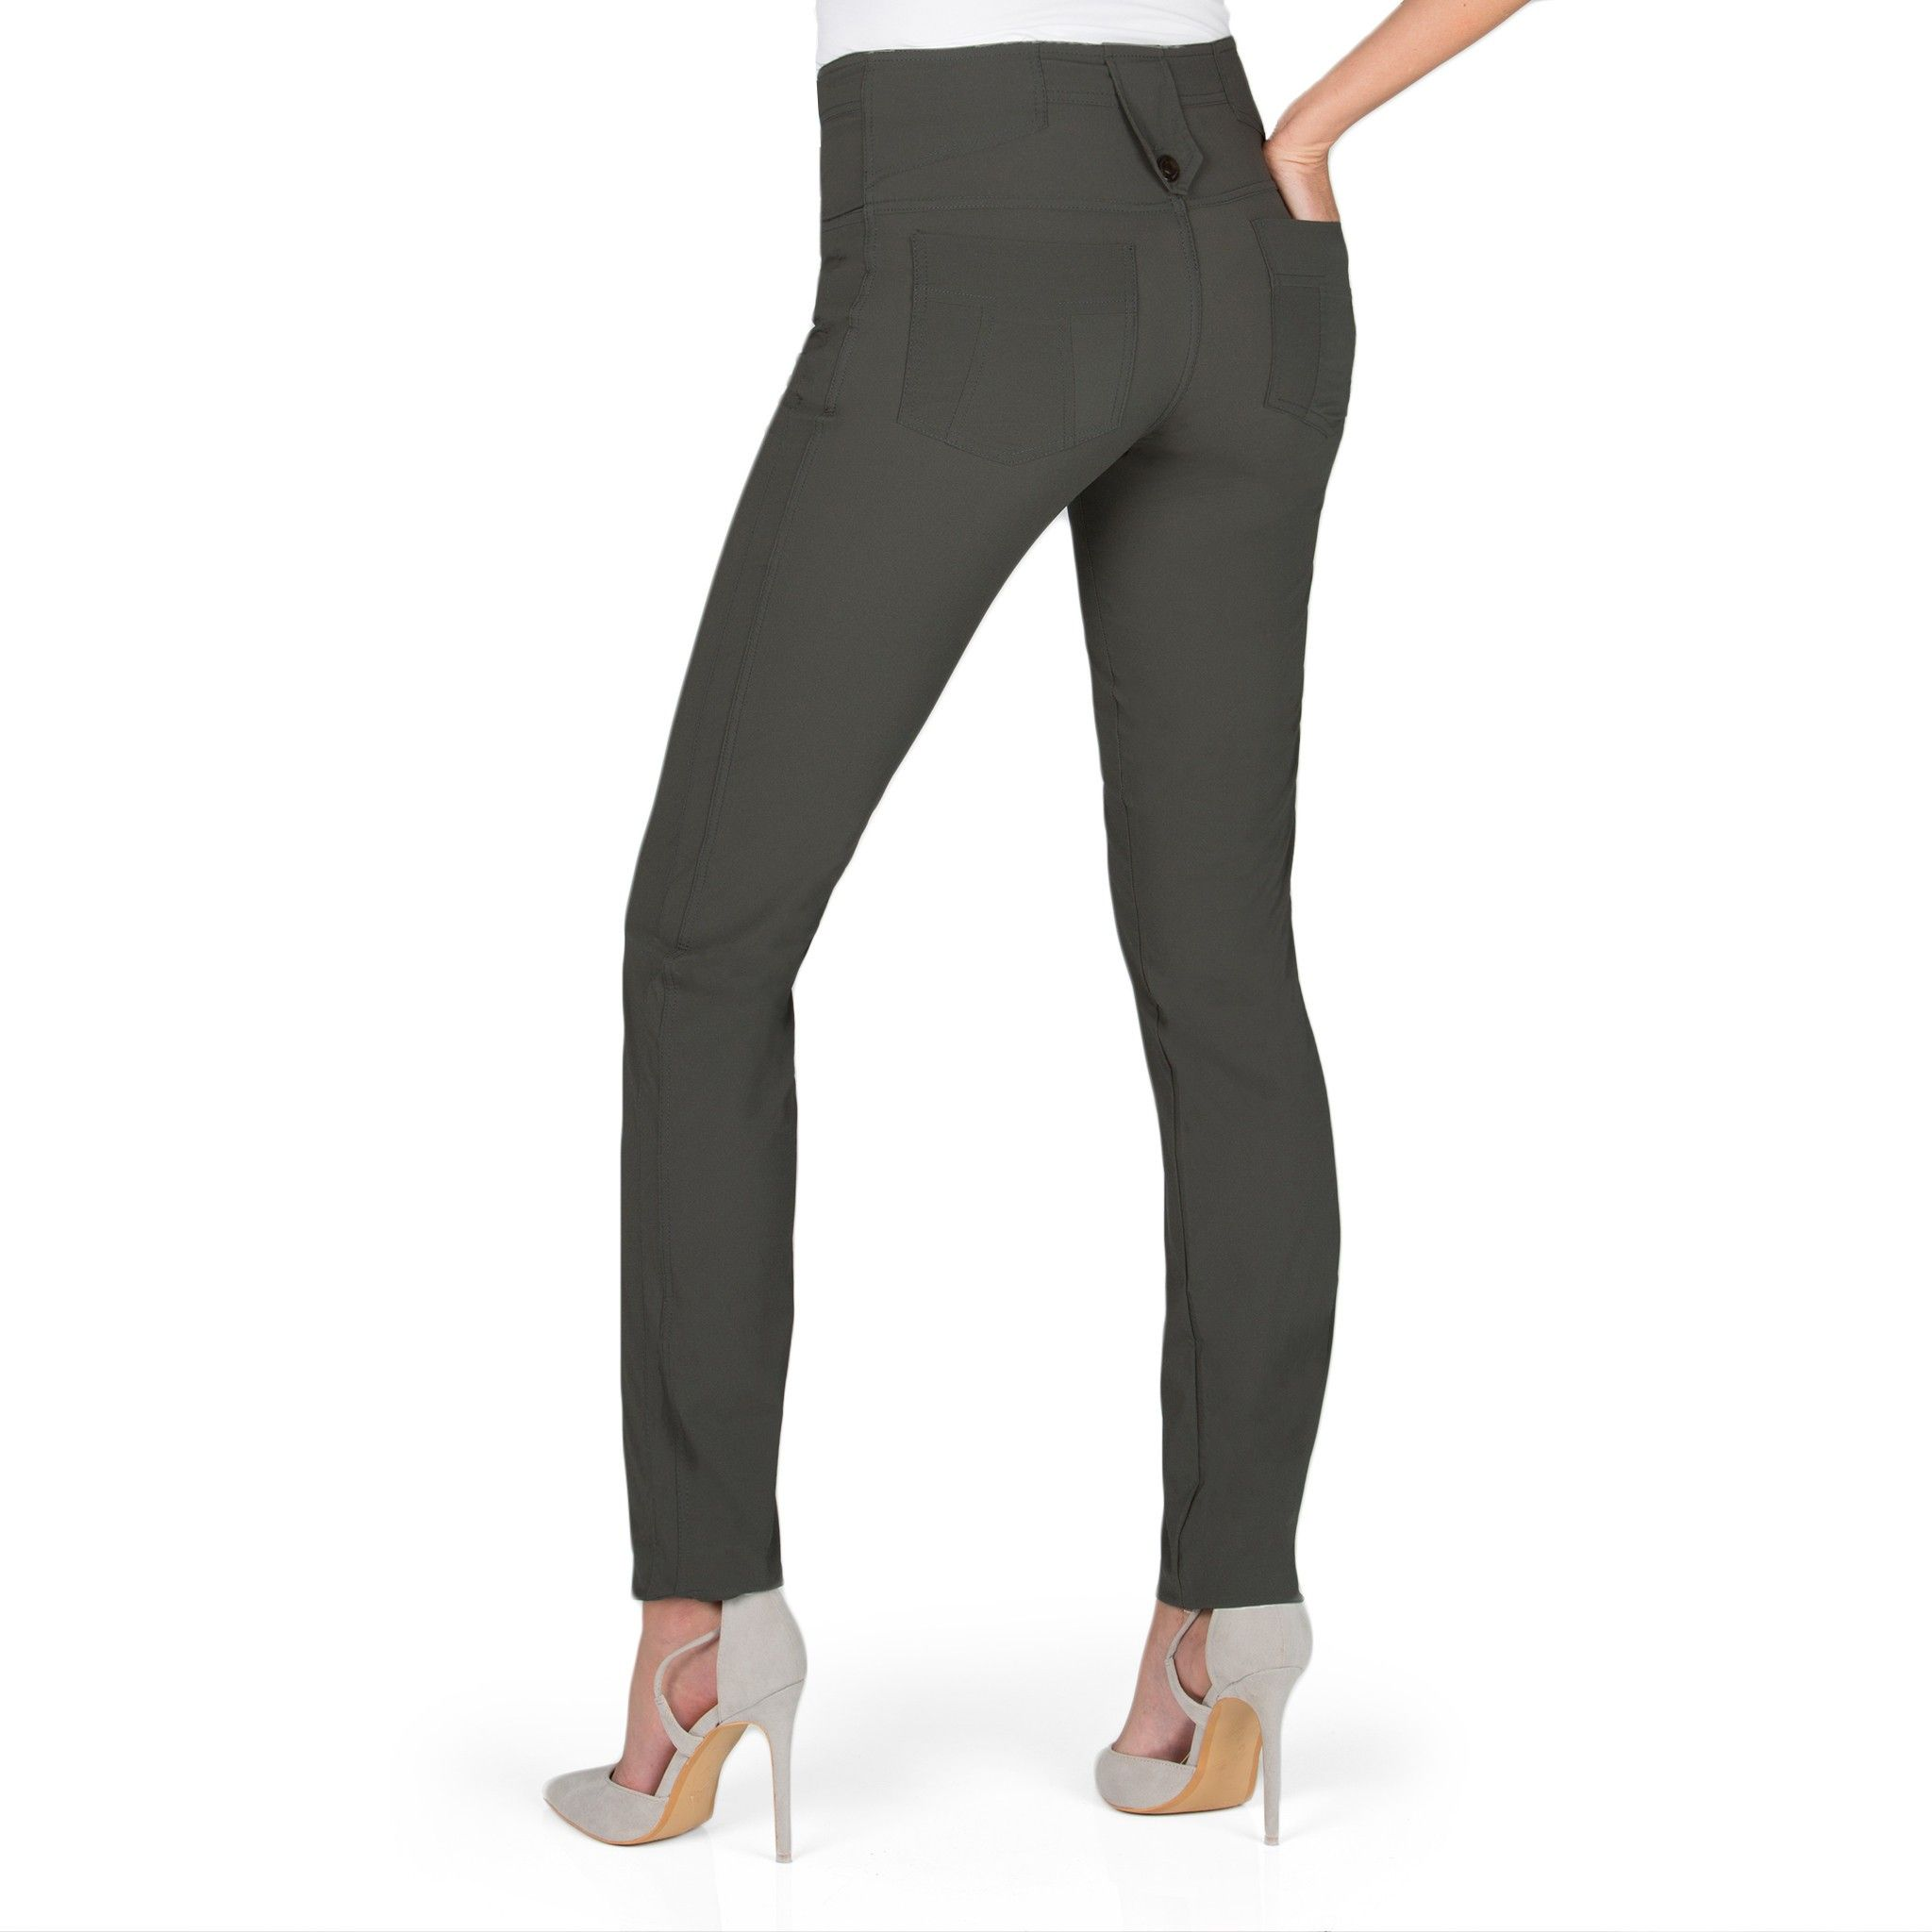 Anatomie Skyer travel pants - loose pants better for warm climates ...